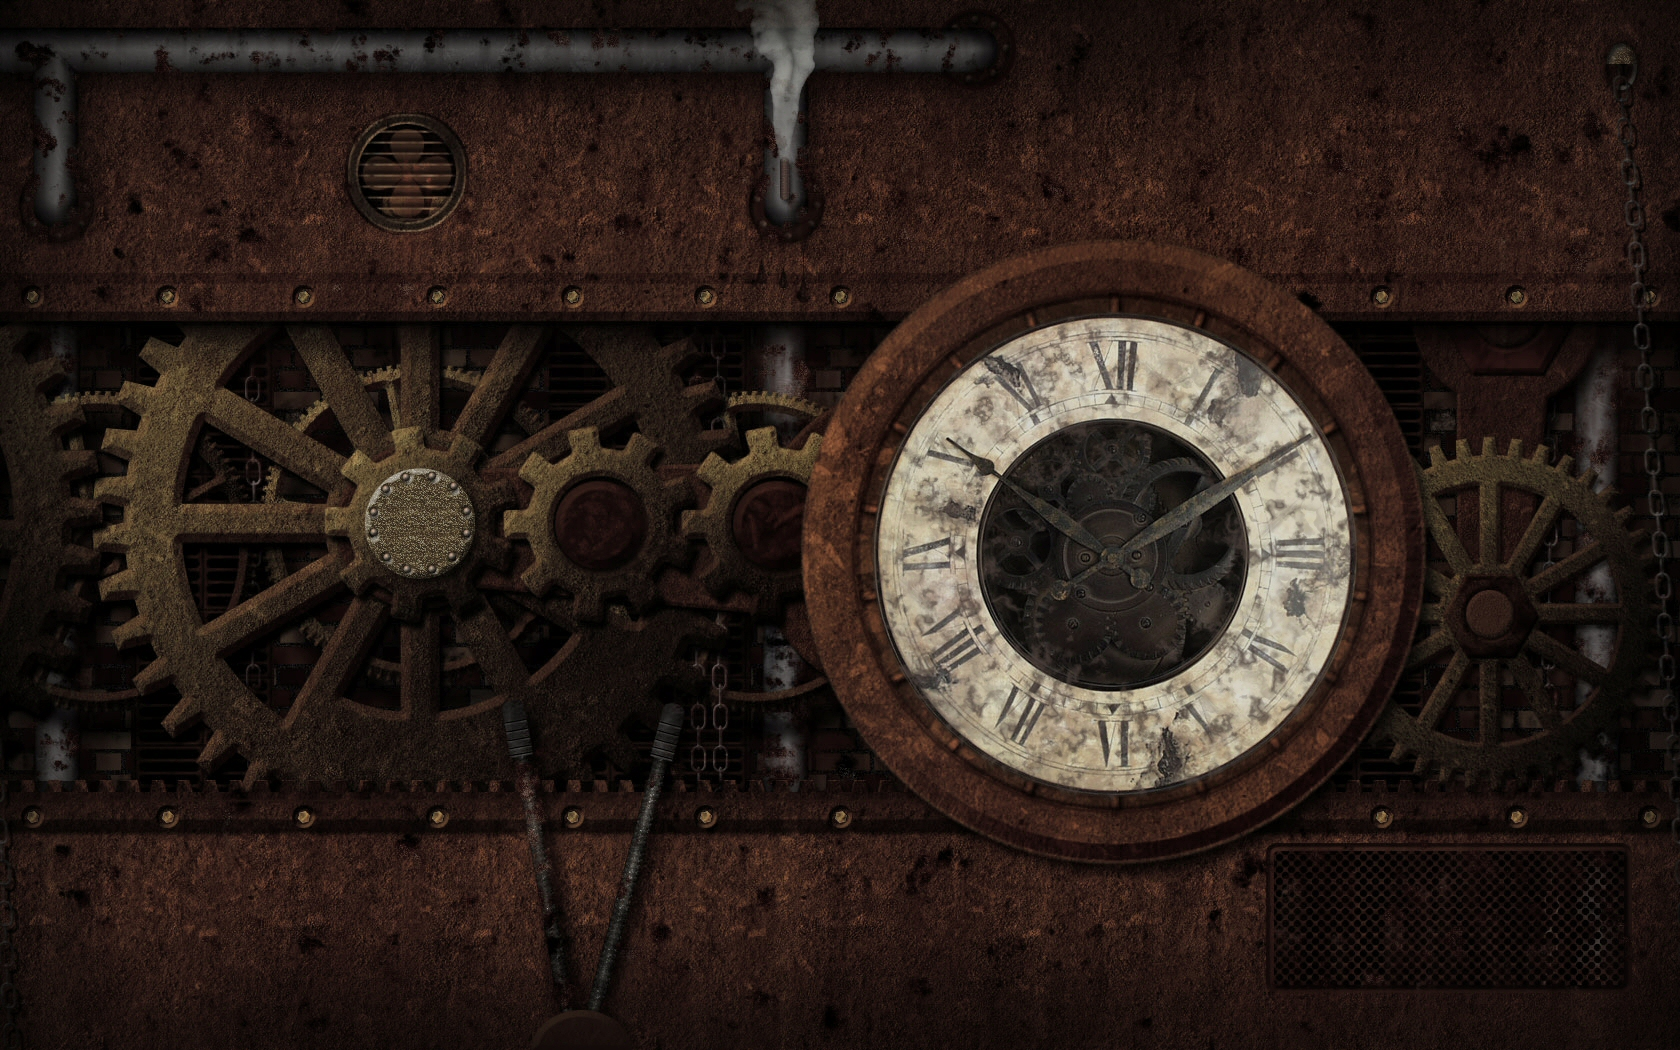 Steampunk Computer Wallpapers Desktop Backgrounds 1680x1050 ID 1680x1050